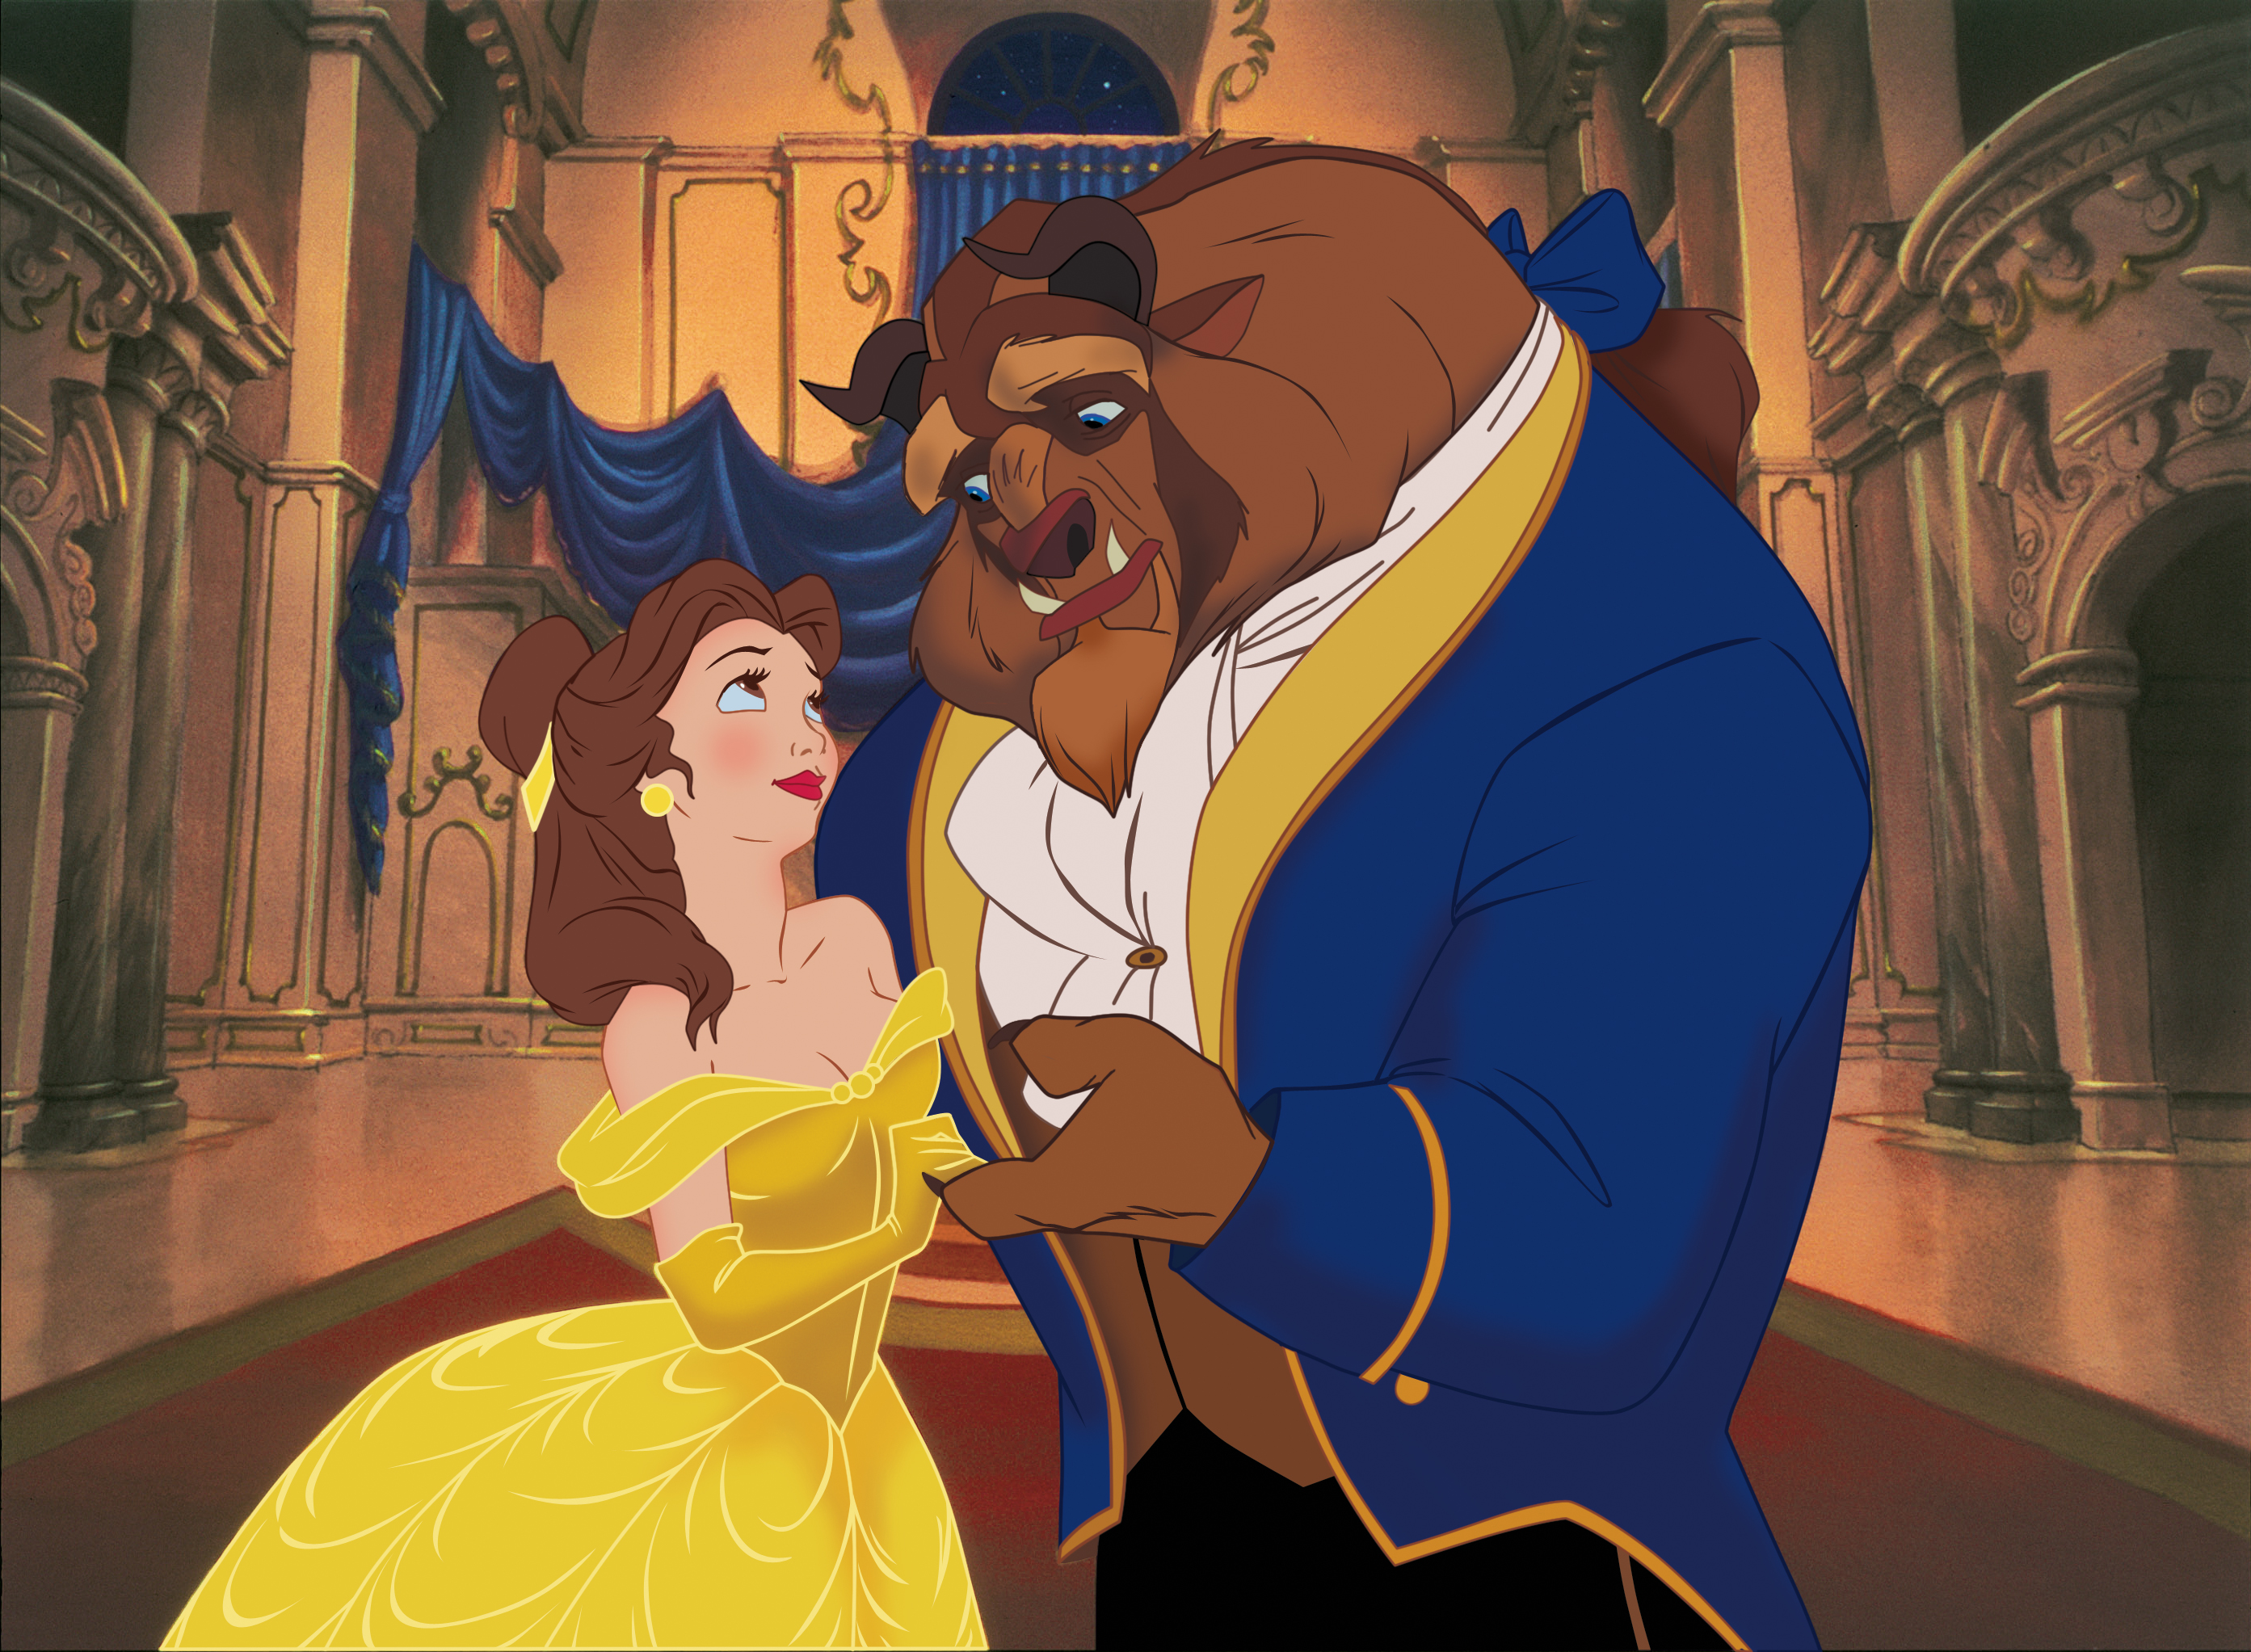 Beauty and the Beast is set for a live-action remake